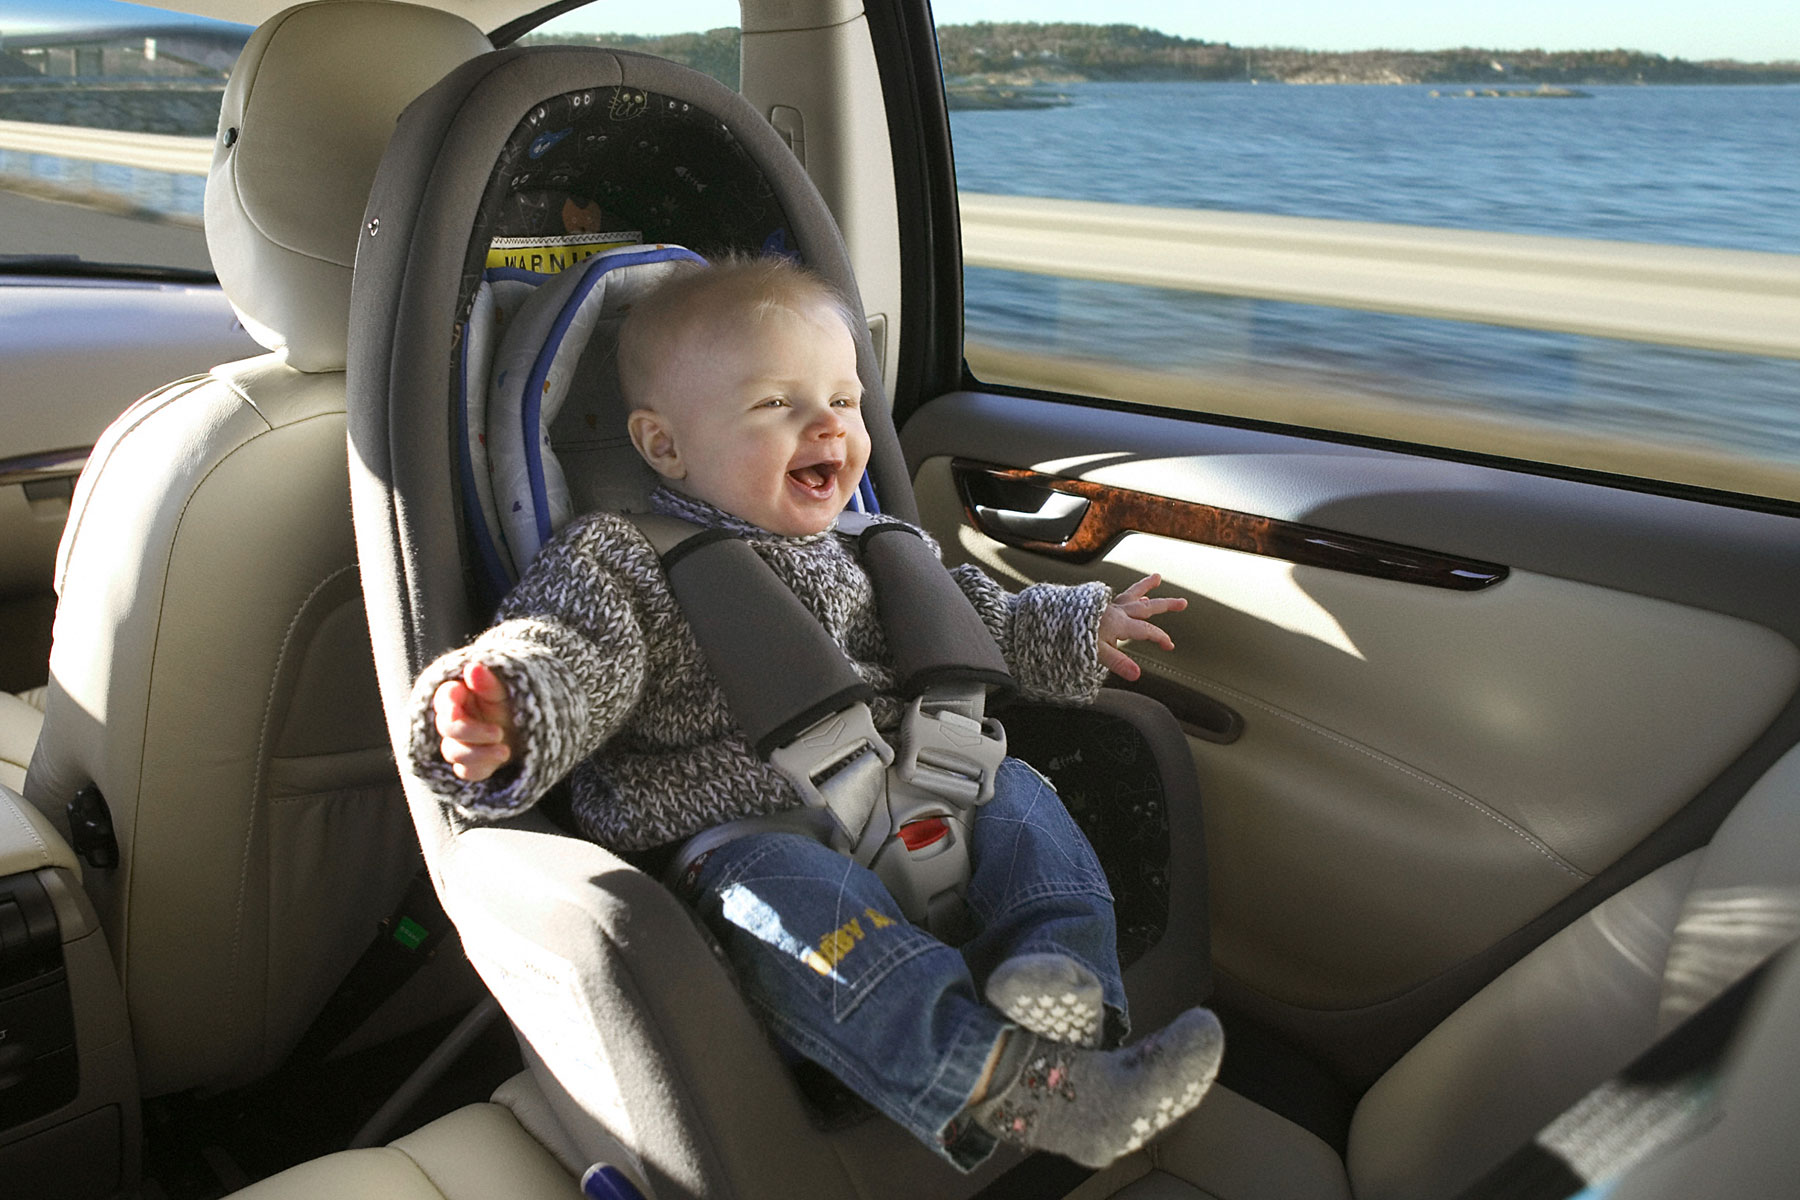 Keep your child rear-facing for longer, warns